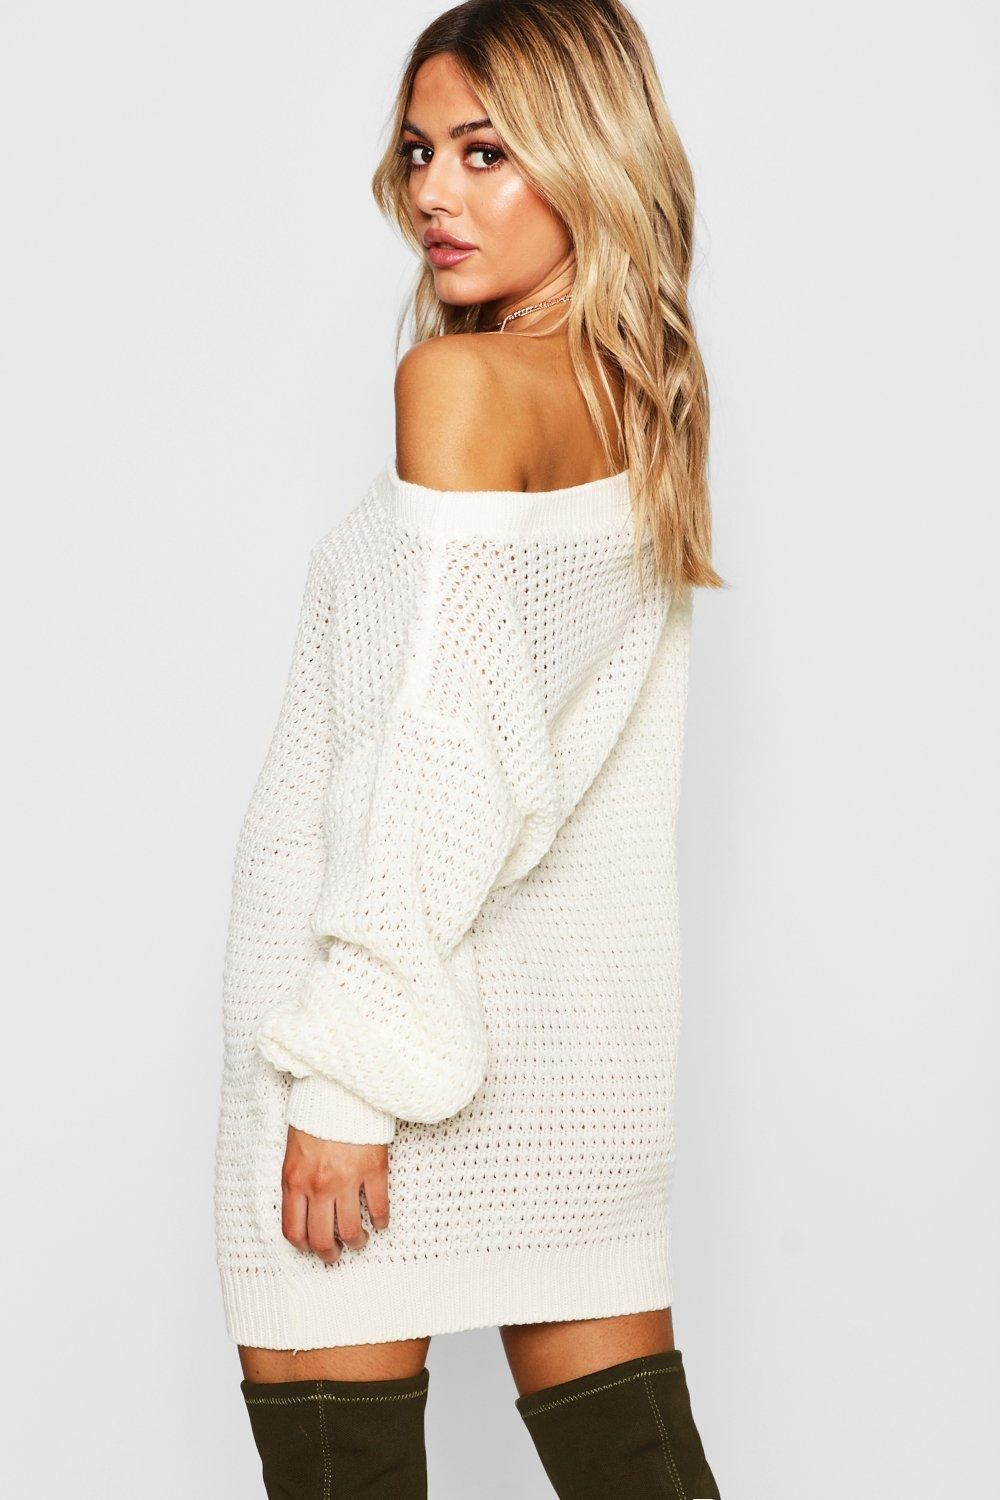 Petite Waffle Knit Off The Shoulder Sweater Dress Boohoo Sweater Dress White Sweater Dress Outfit Petite Outfits [ 1500 x 1000 Pixel ]